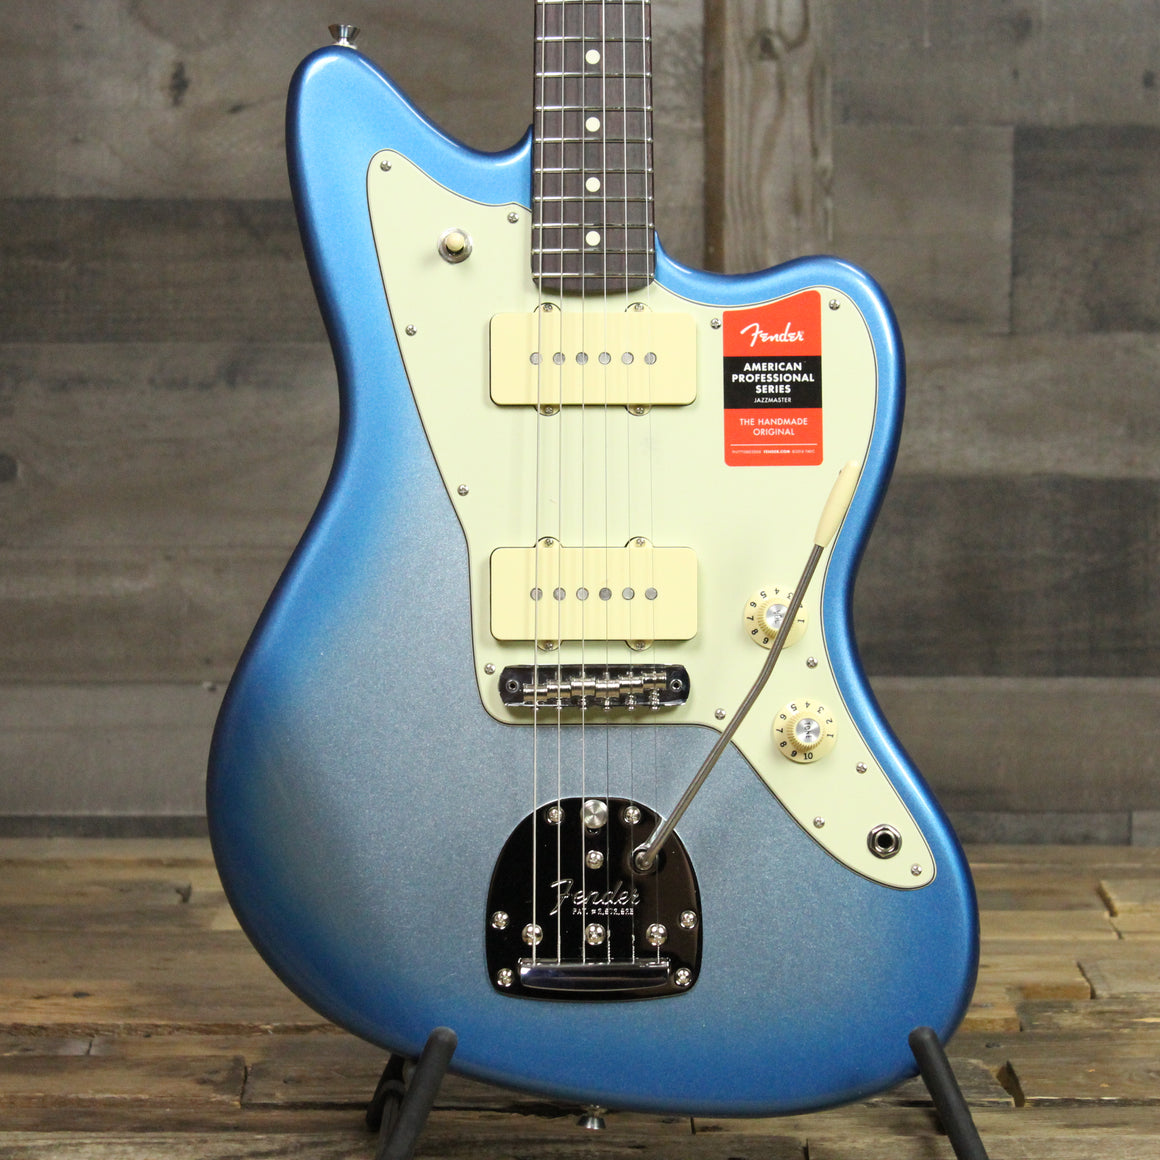 Fender Limited Edition American Professional Jazzmaster Rosewood Neck - Sky Blue Metallic